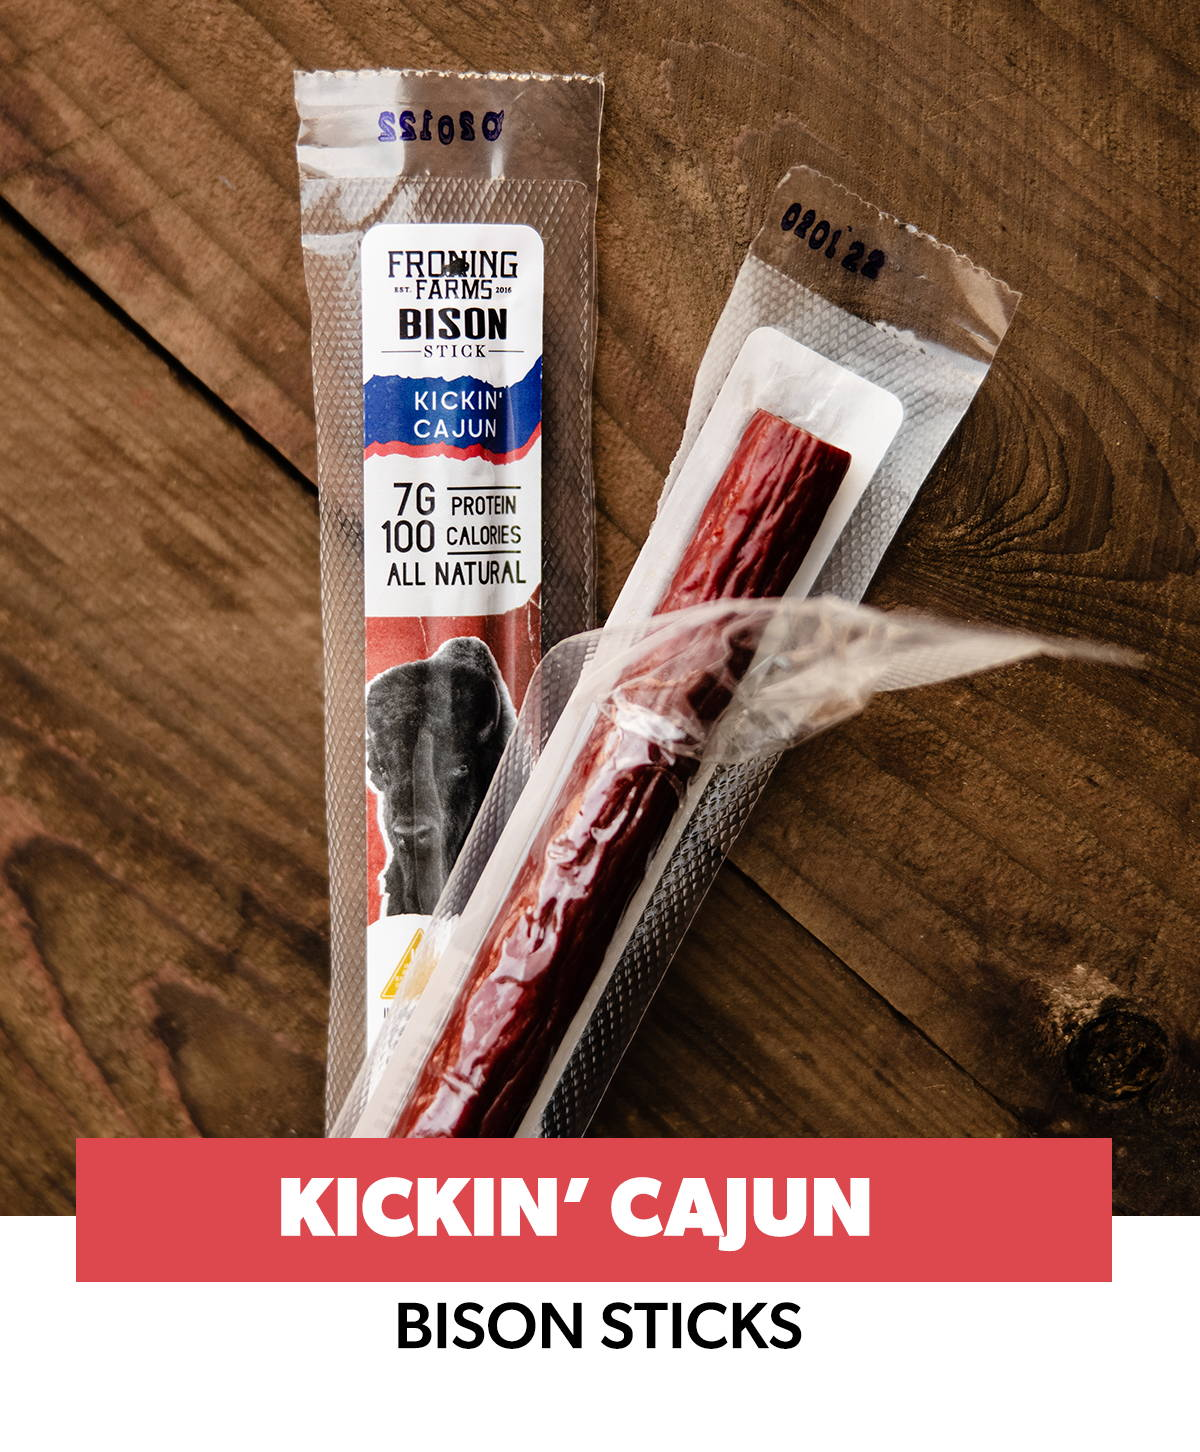 3 froning farms bison sticks